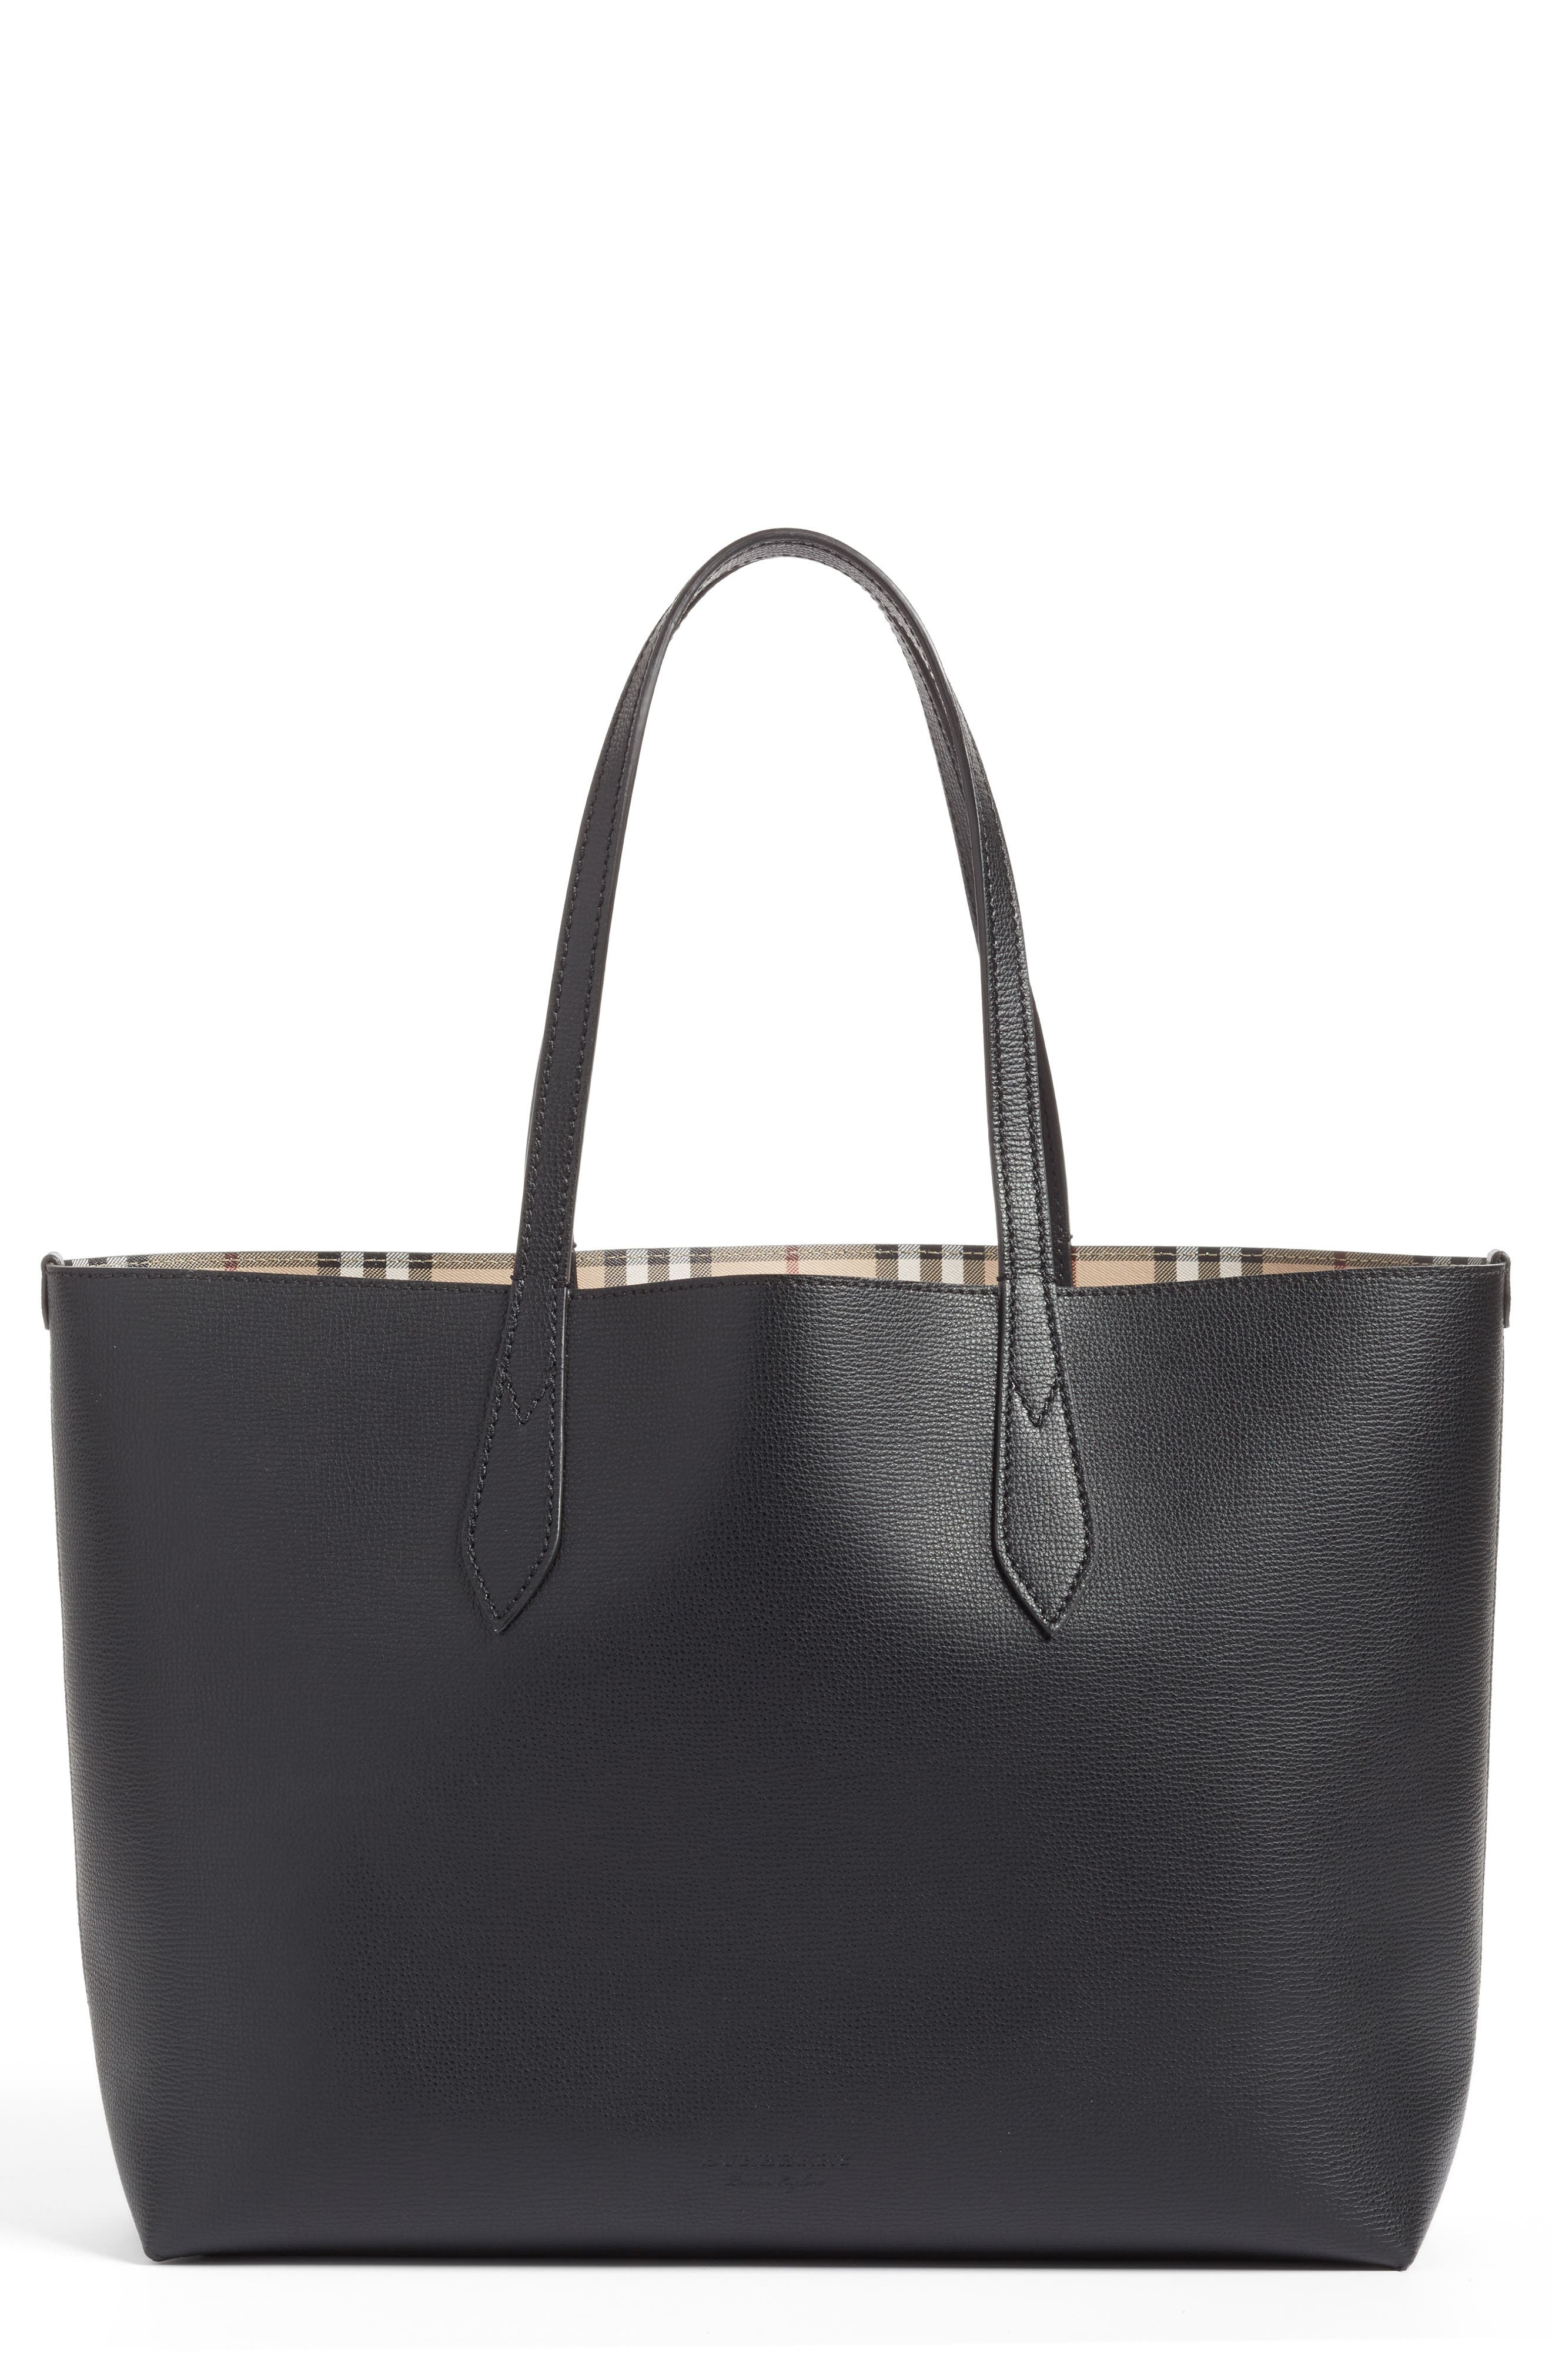 Main Image - Burberry Medium Lavenby Reversible Calfskin Leather Tote